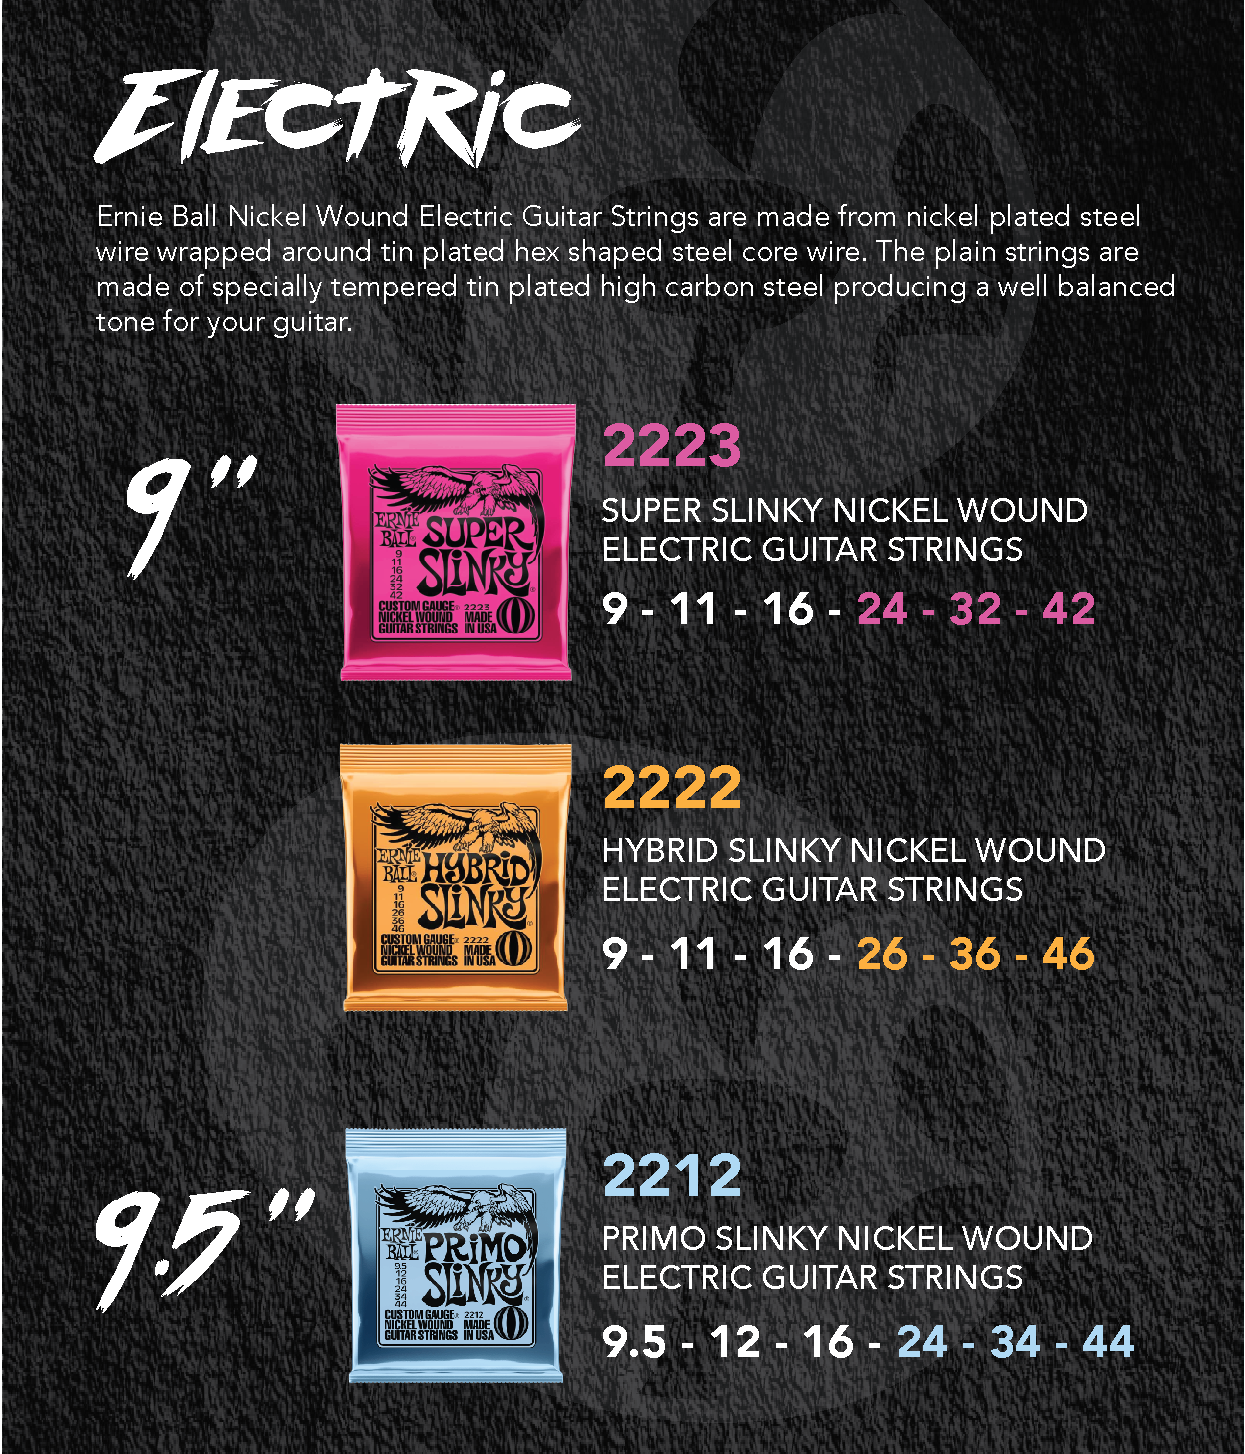 Ernie Ball 9 Electric Guitar String Super Slinky Nickel Wound Set 9-42 (2223) Pink